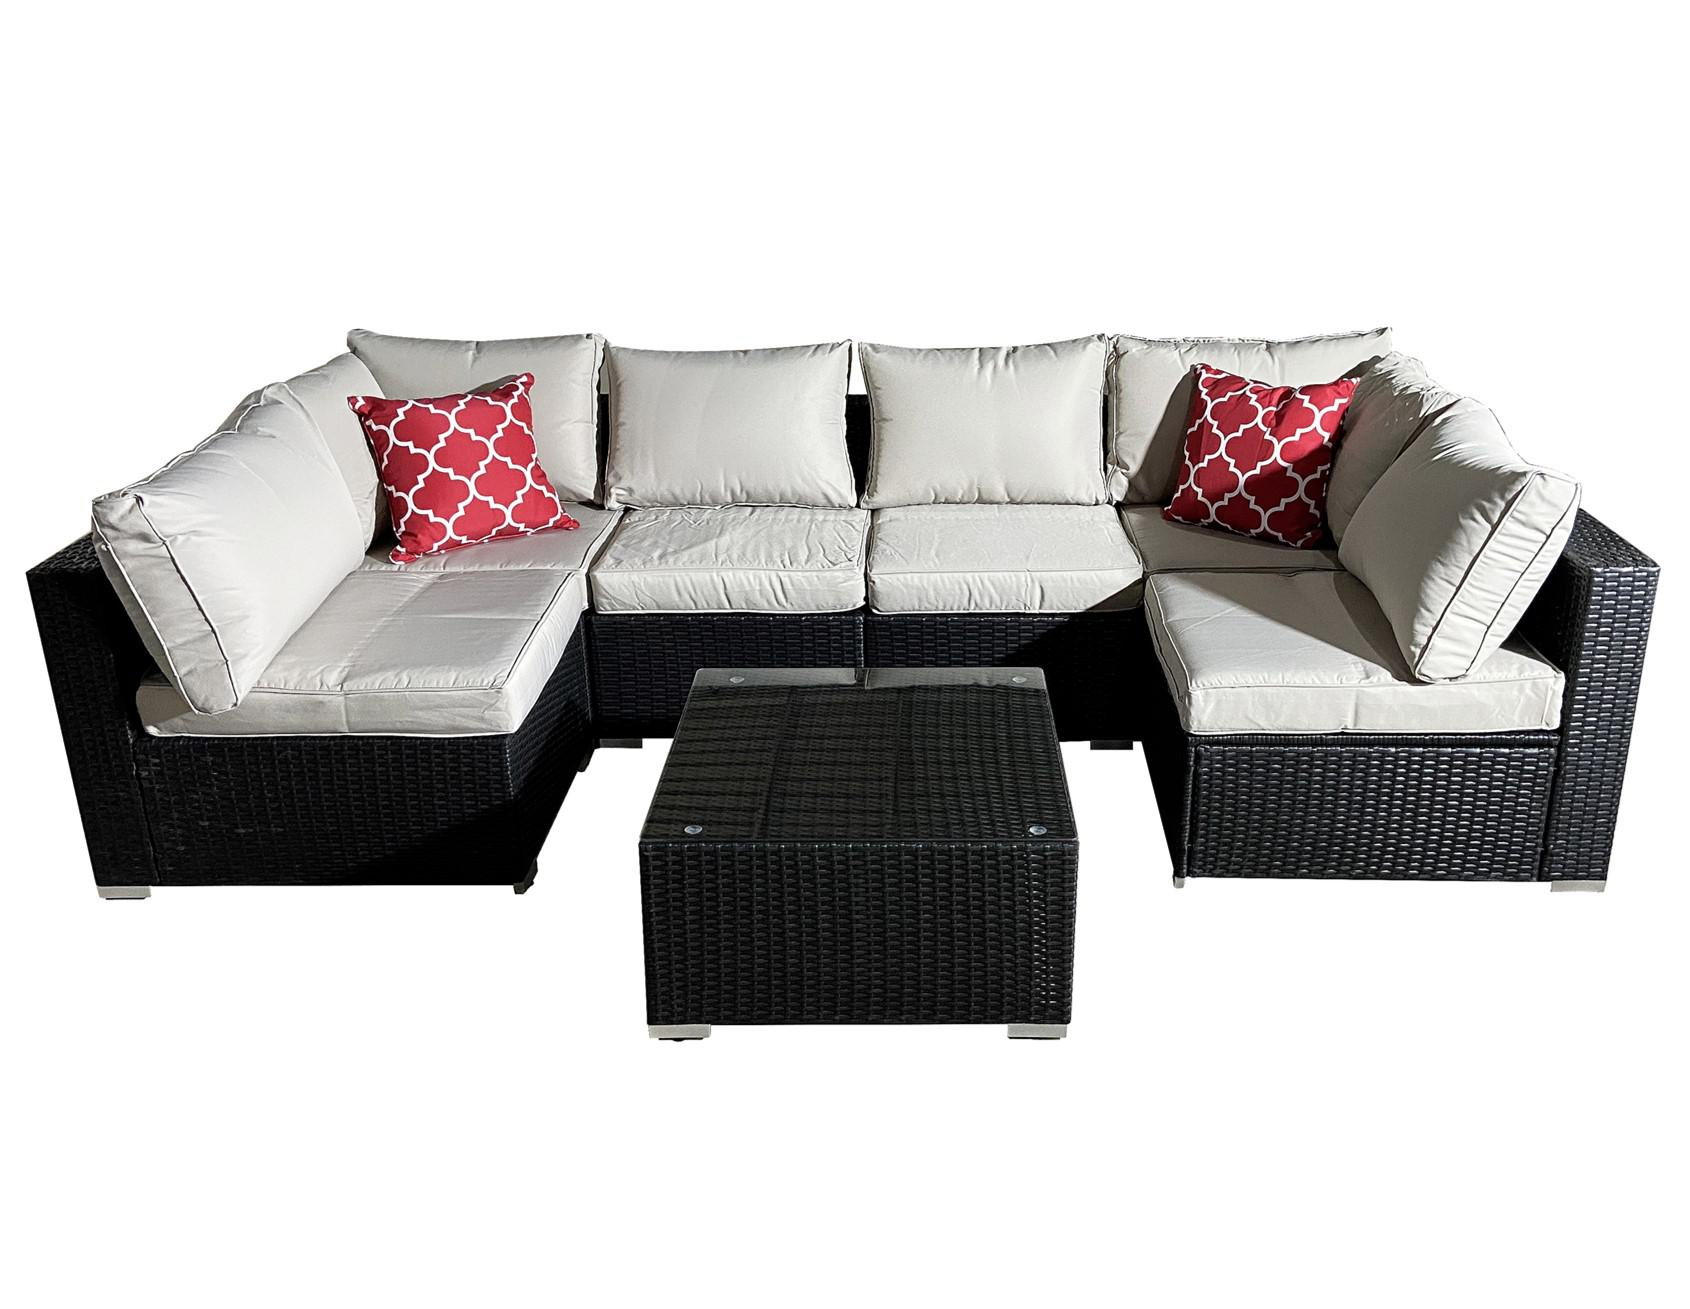 outdoor garden rattan sofa lounge set couch wicker table chairs patio furniture 7 pieces